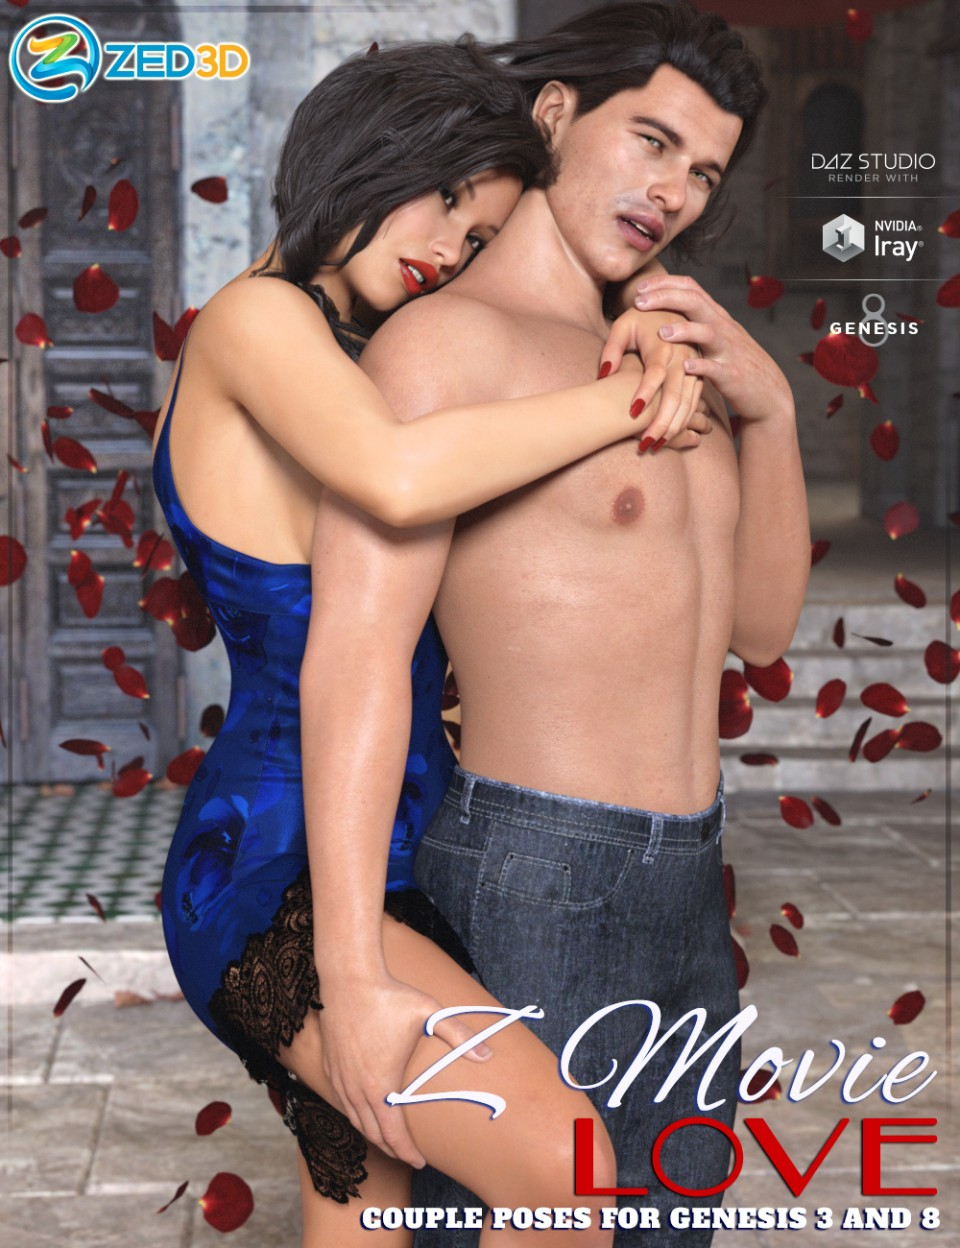 Z Movie Love Couple Poses for Genesis 3 and 8_DAZ3D下载站